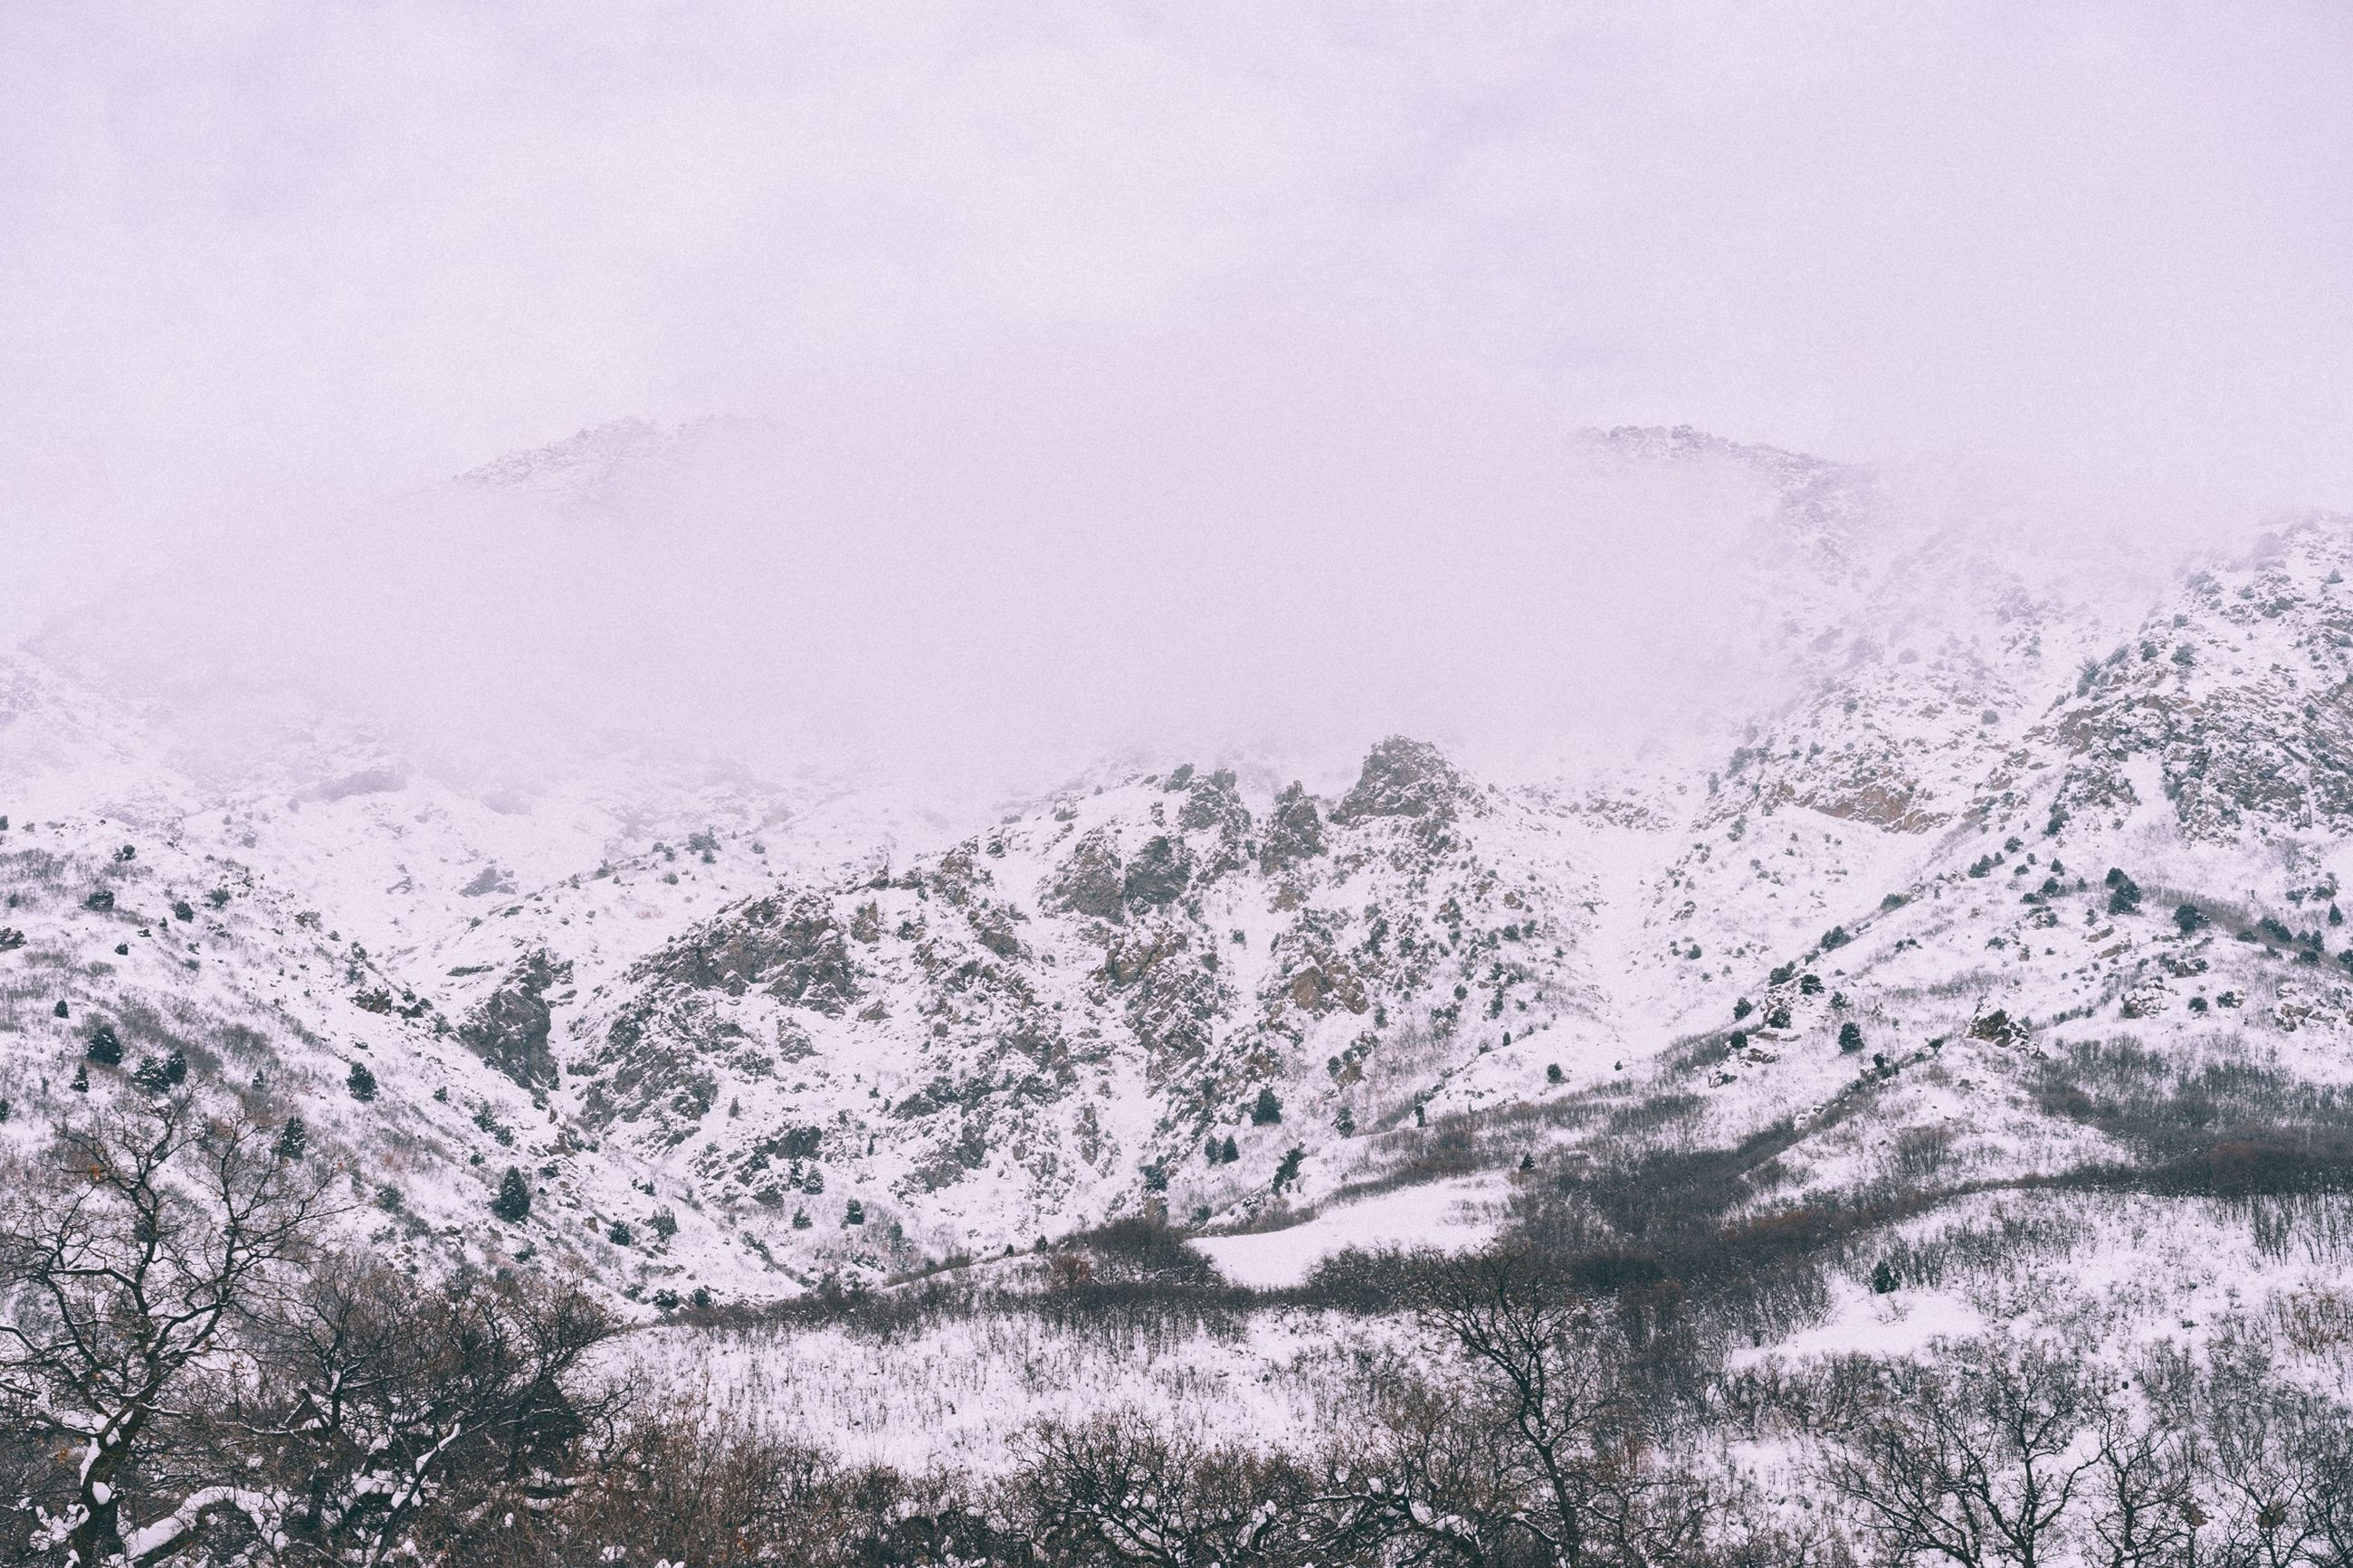 snow, winter, cold temperature, weather, season, tranquility, tranquil scene, scenics, beauty in nature, covering, frozen, mountain, nature, white color, landscape, snowcapped mountain, non-urban scene, high angle view, snowcapped, fog